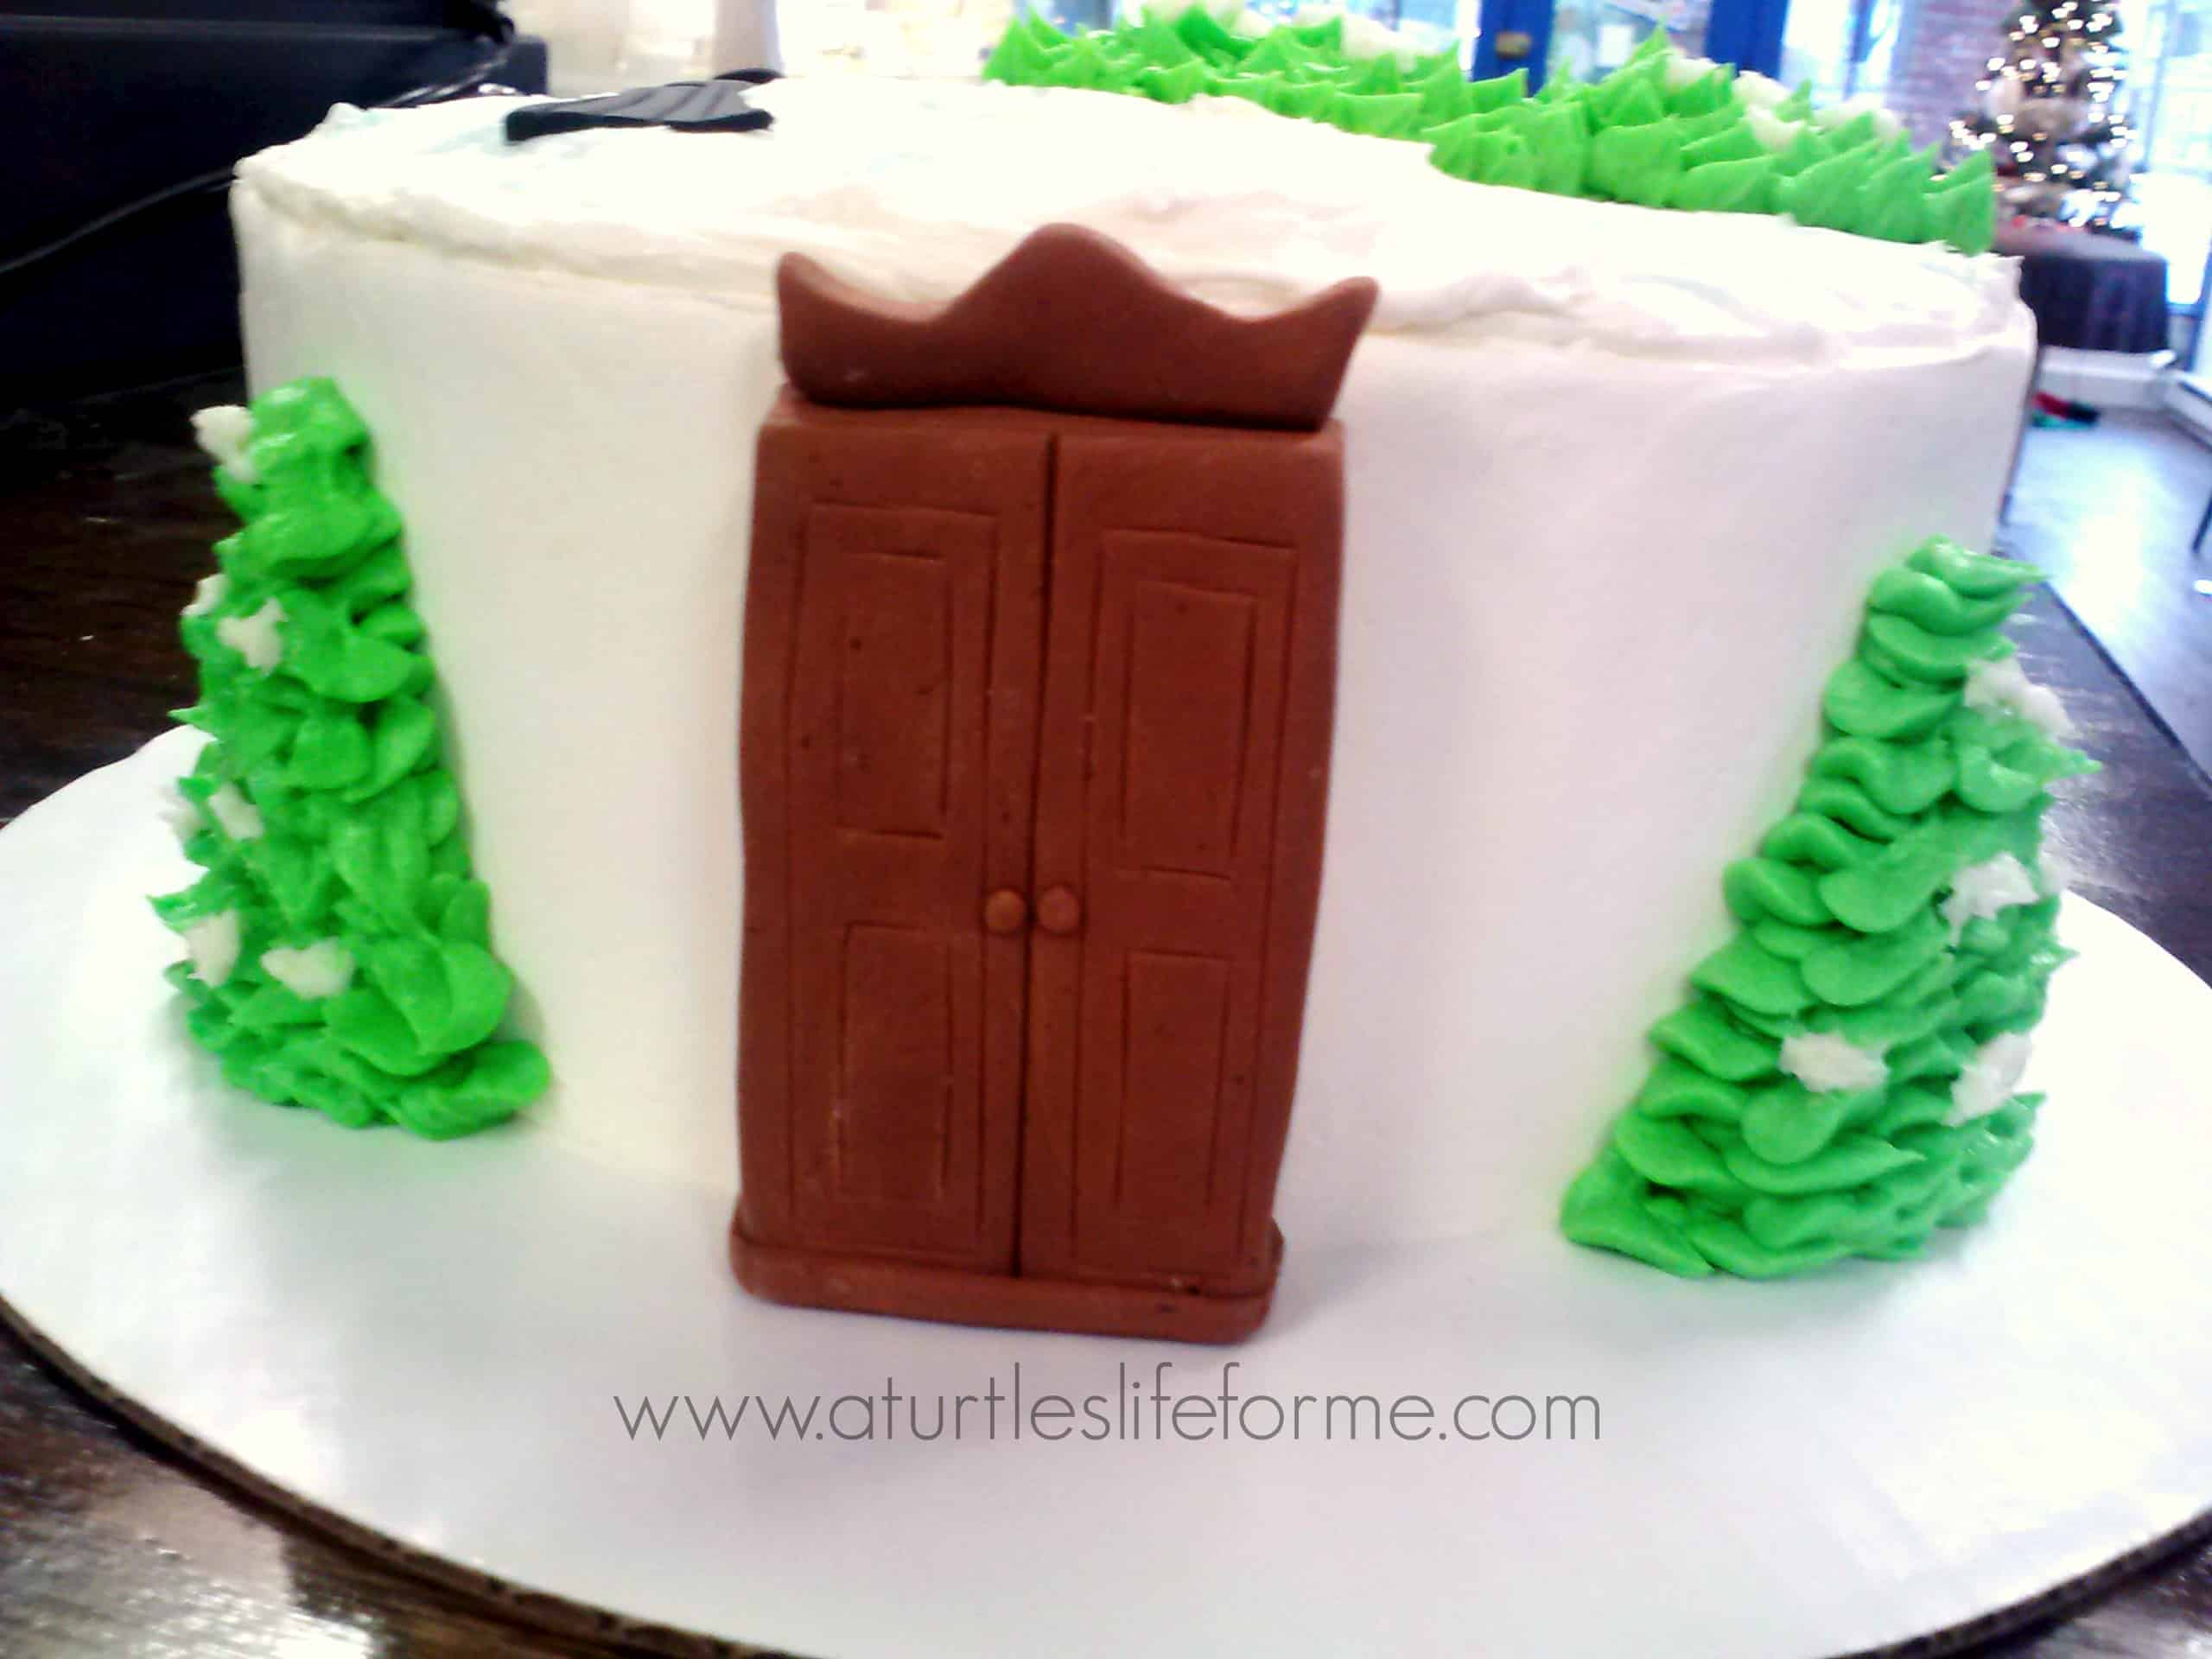 Narnia Birthday Cake Decorations Image Inspiration of Cake and